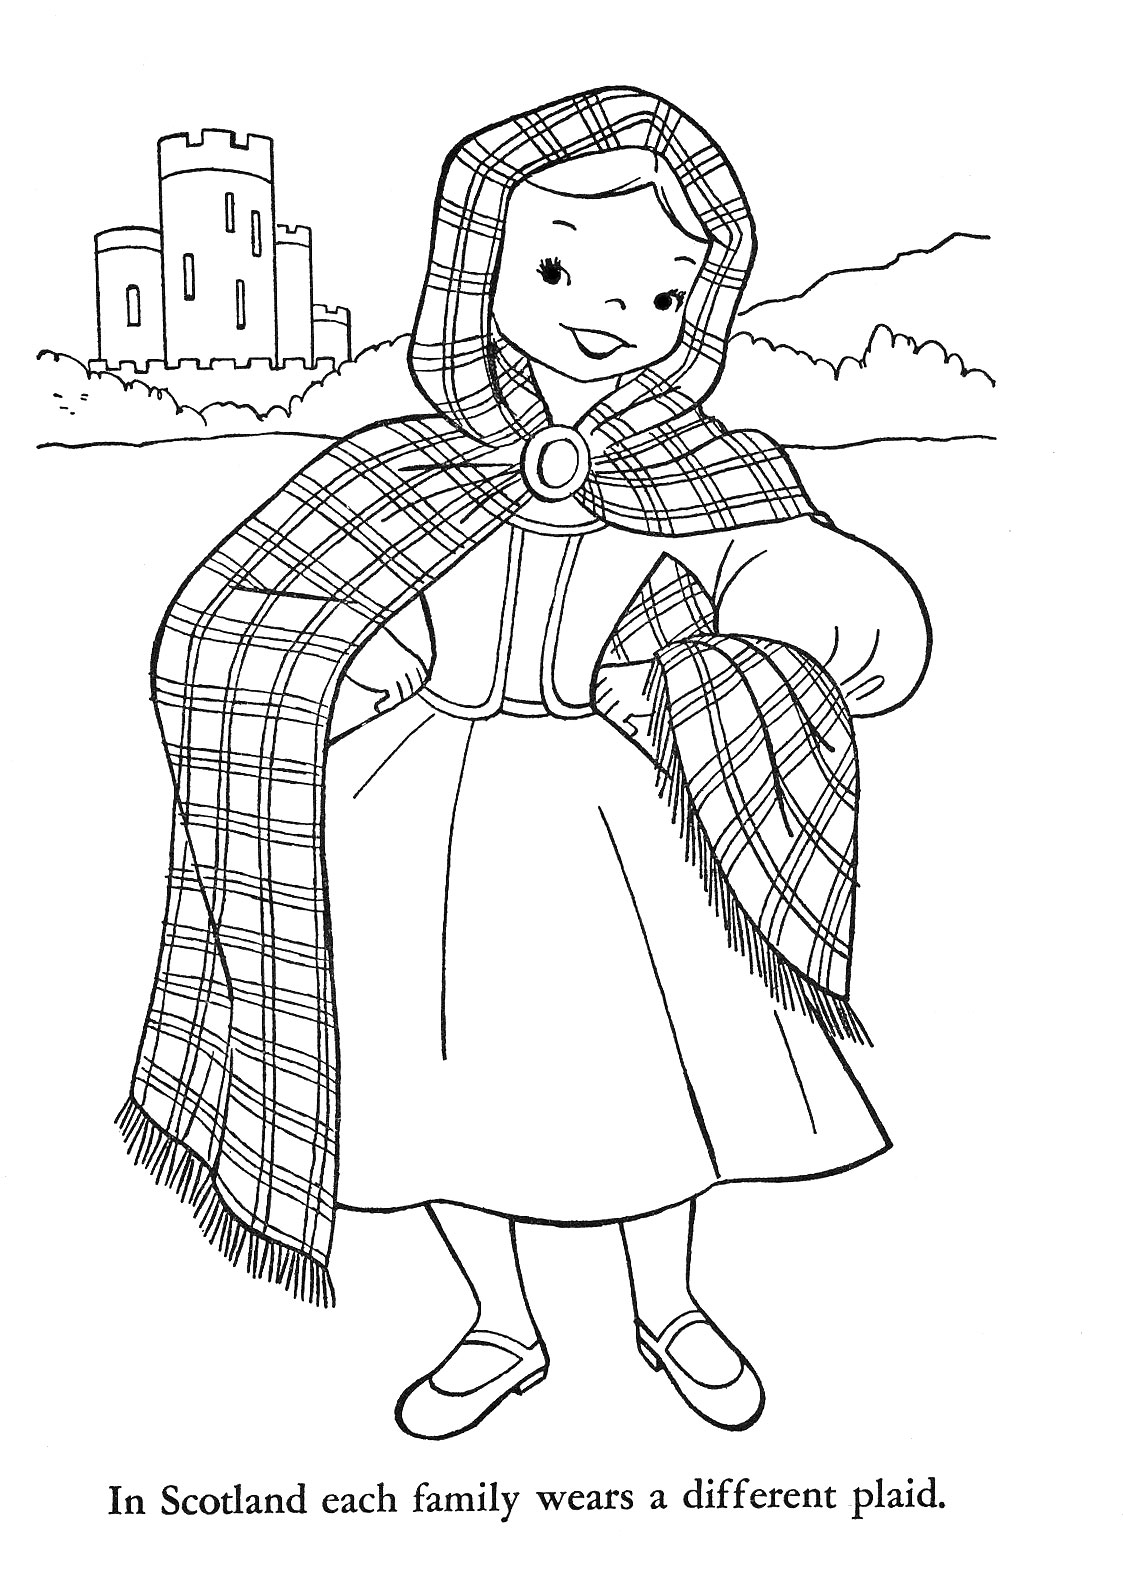 highland dance coloring pages - photo#15